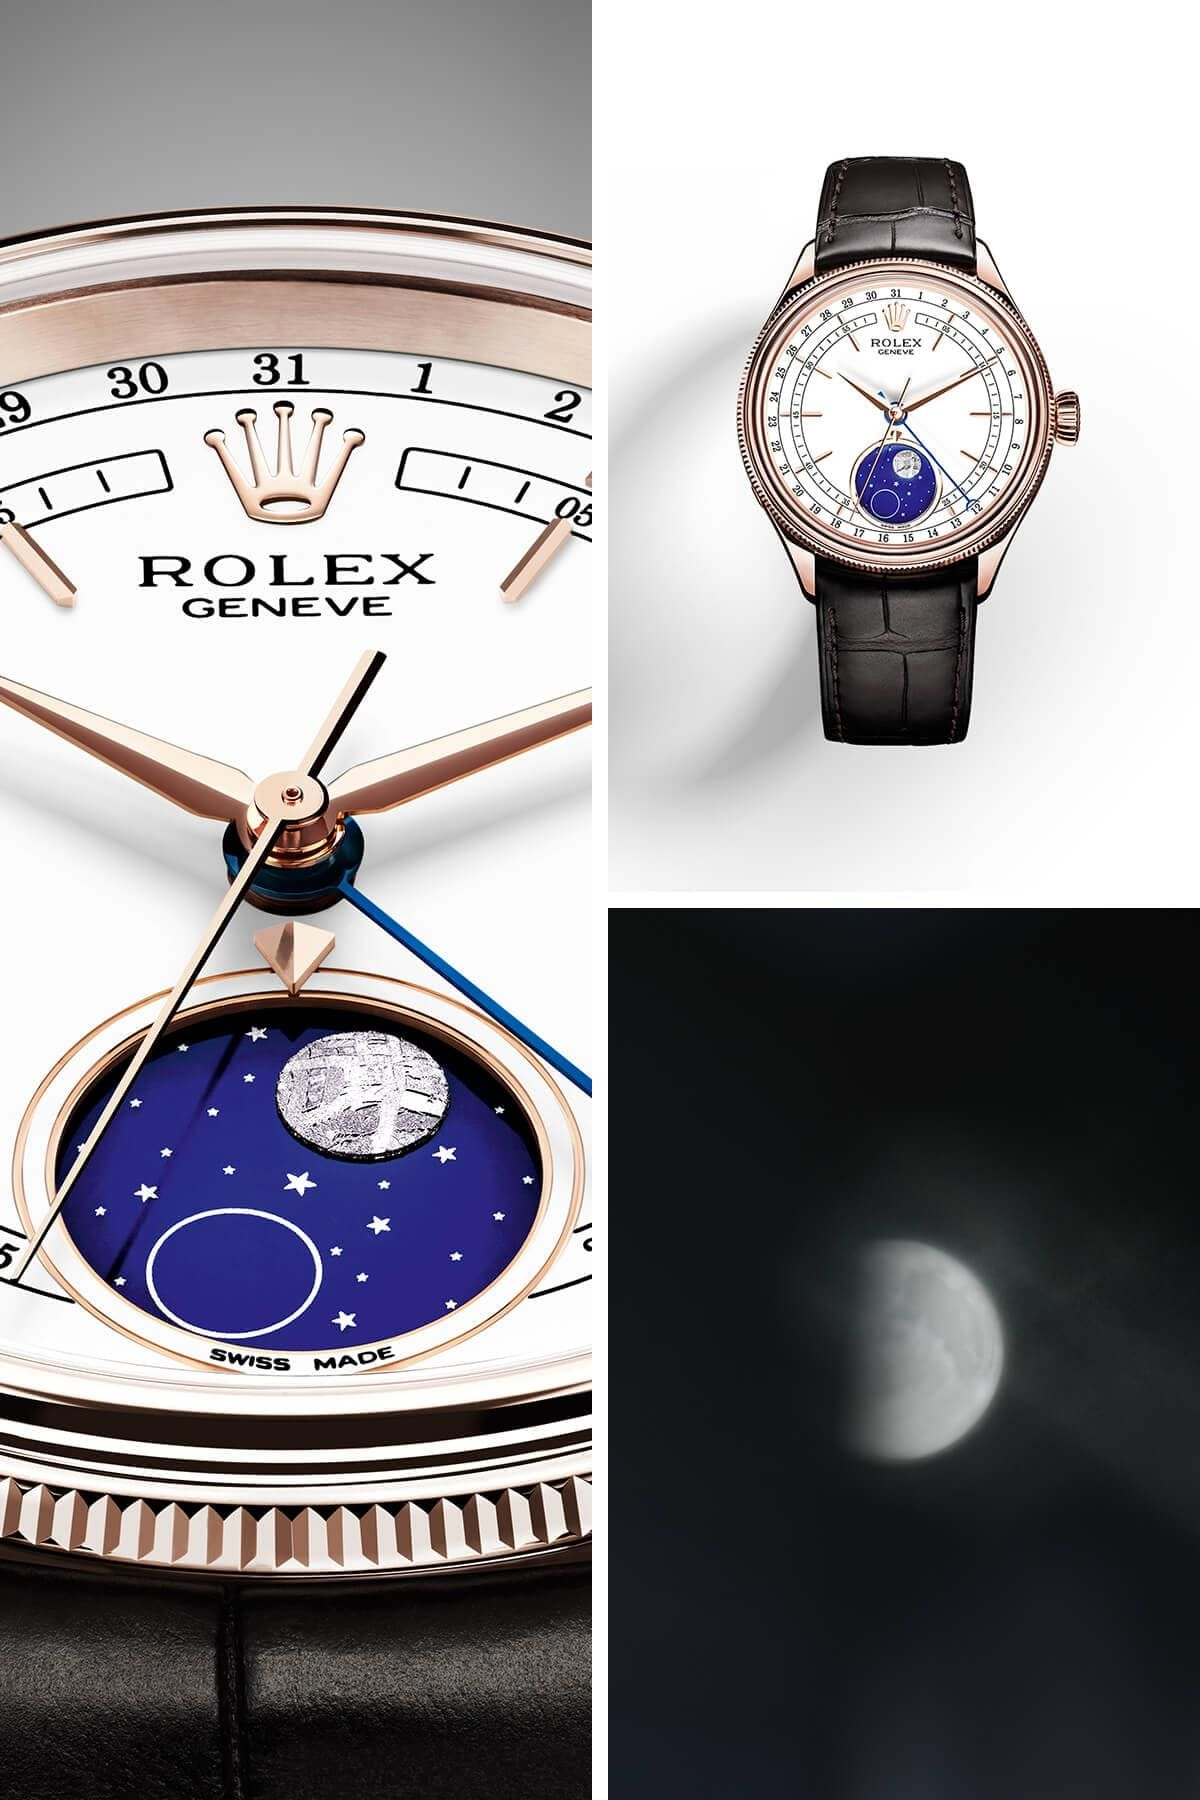 2178863e66f New Rolex Cellini Moonphase watch - Baselworld 2017